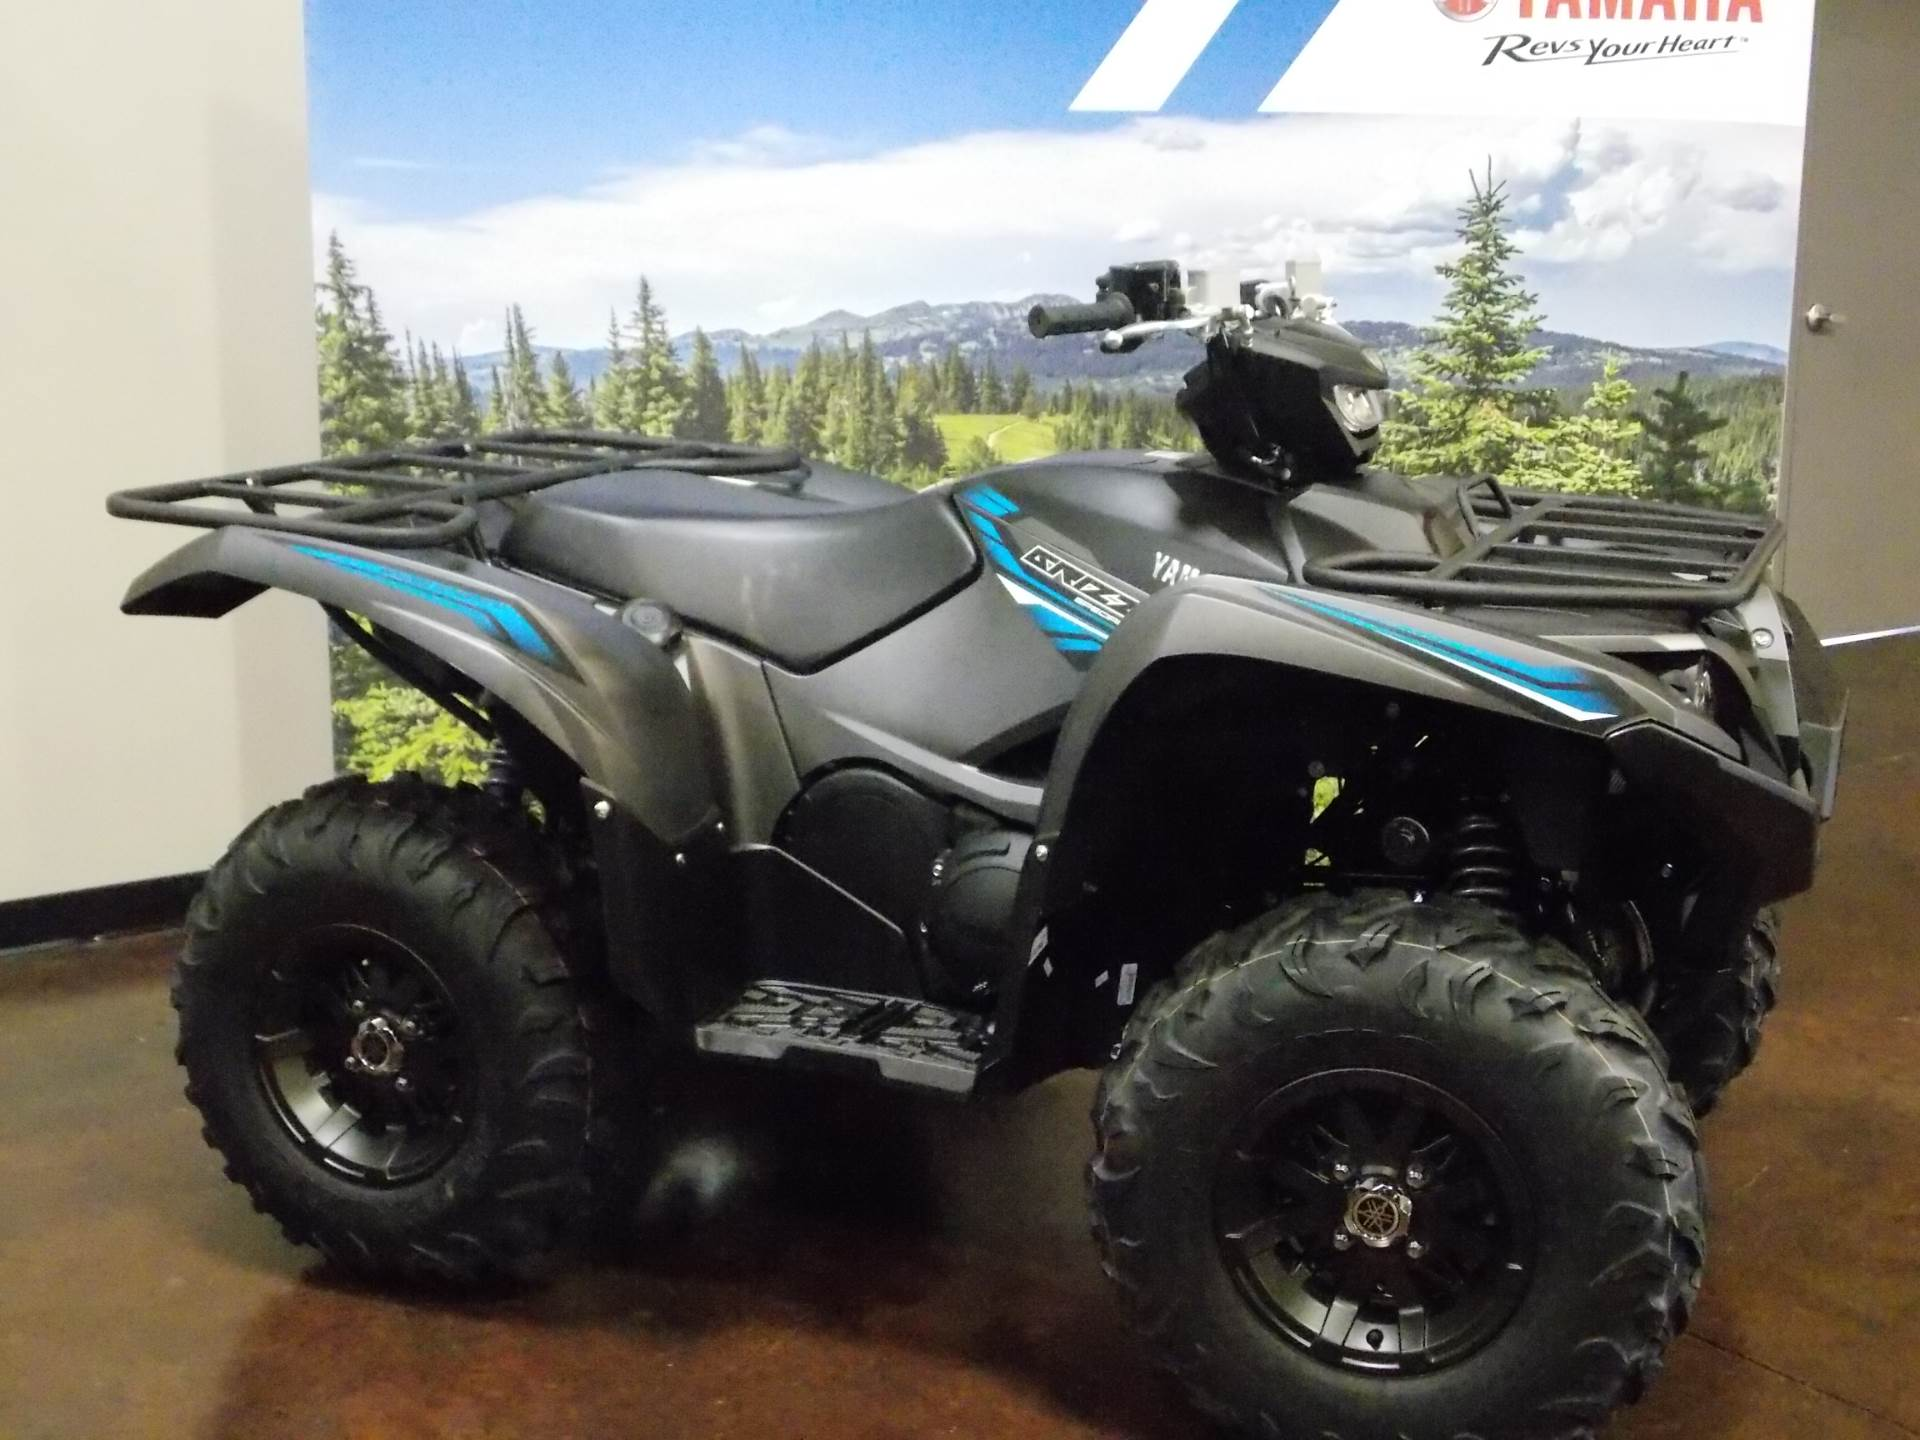 New 2018 Yamaha Grizzly EPS SE ATVs in Statesville, NC | Stock ...